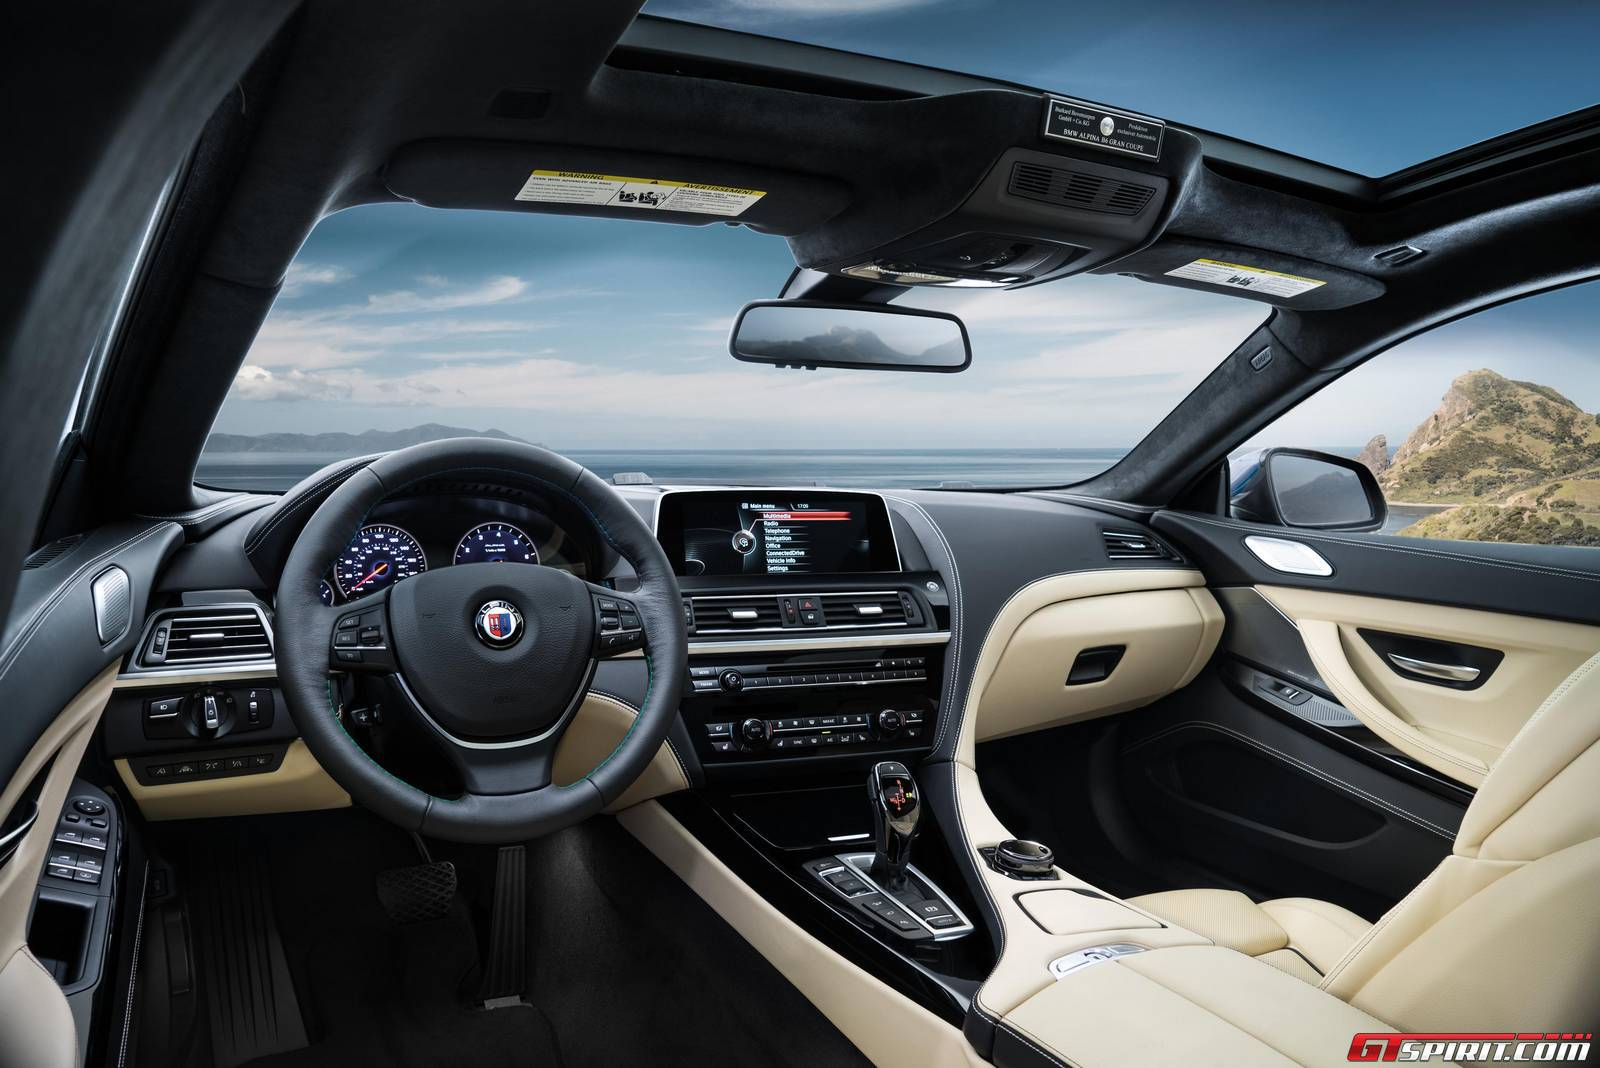 Official: 2016 BMW Alpina B6 xDrive Gran Coupe - GTspirit